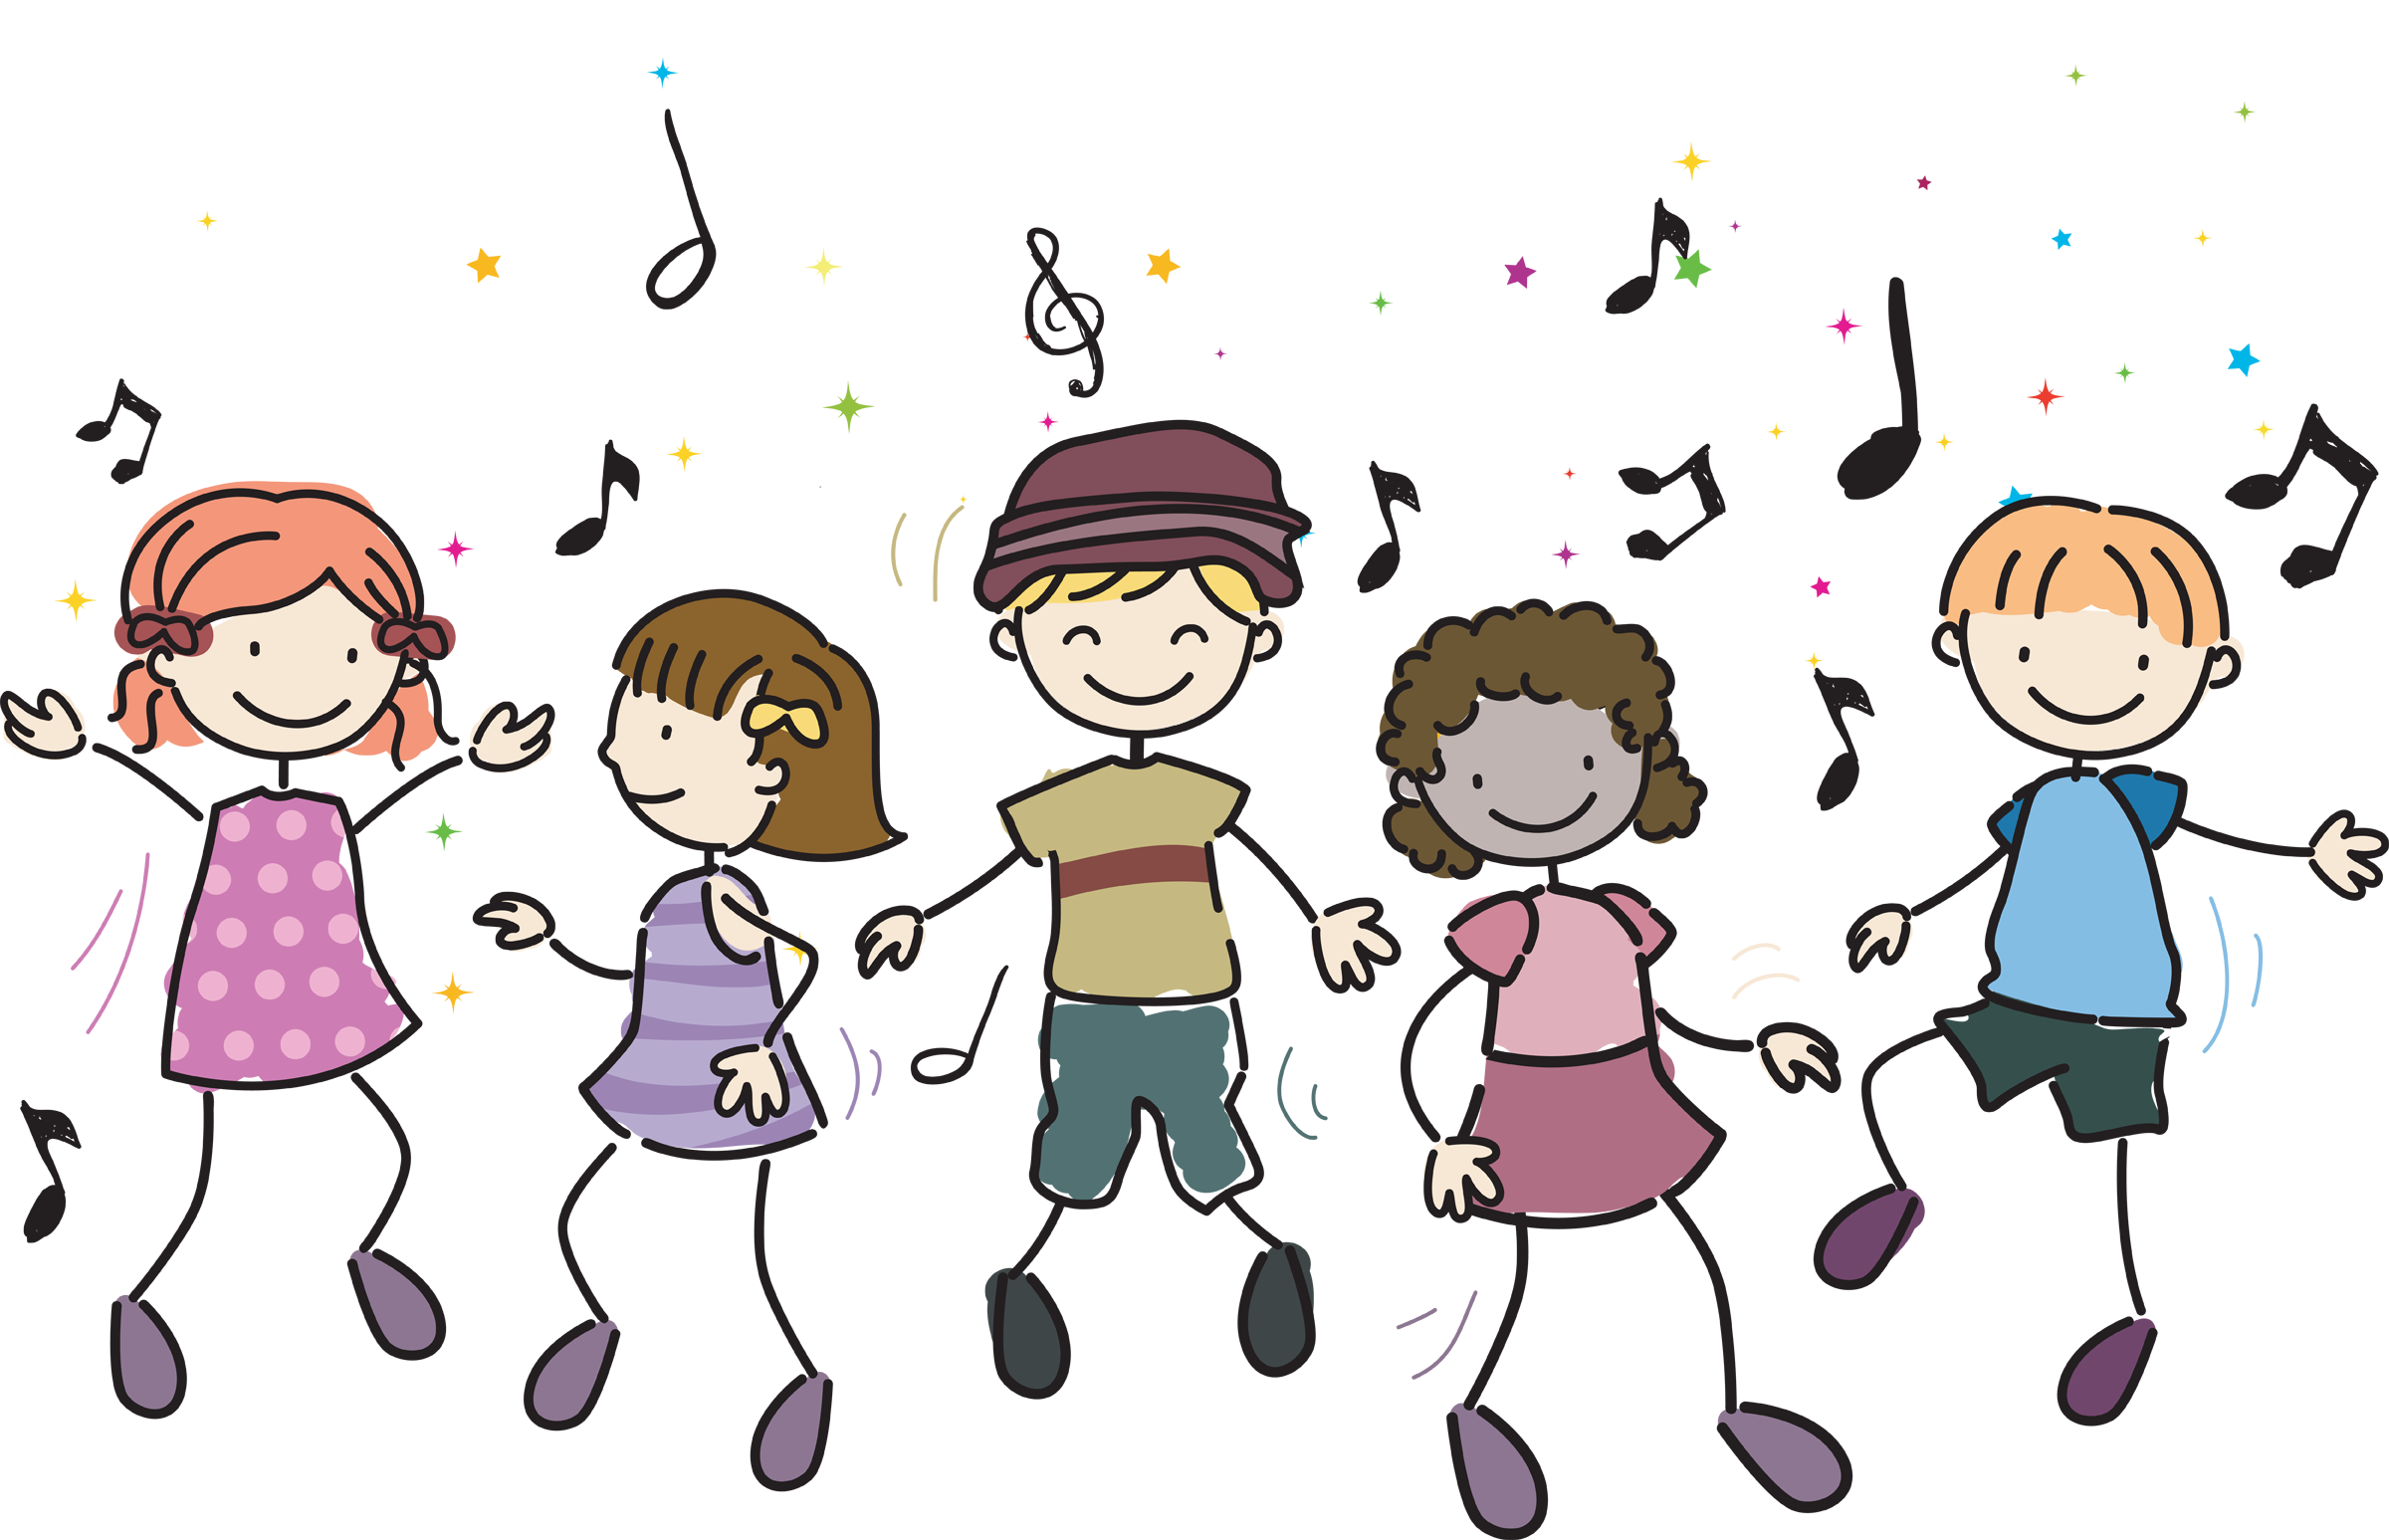 Movement clipart singer dancer. We are moving and